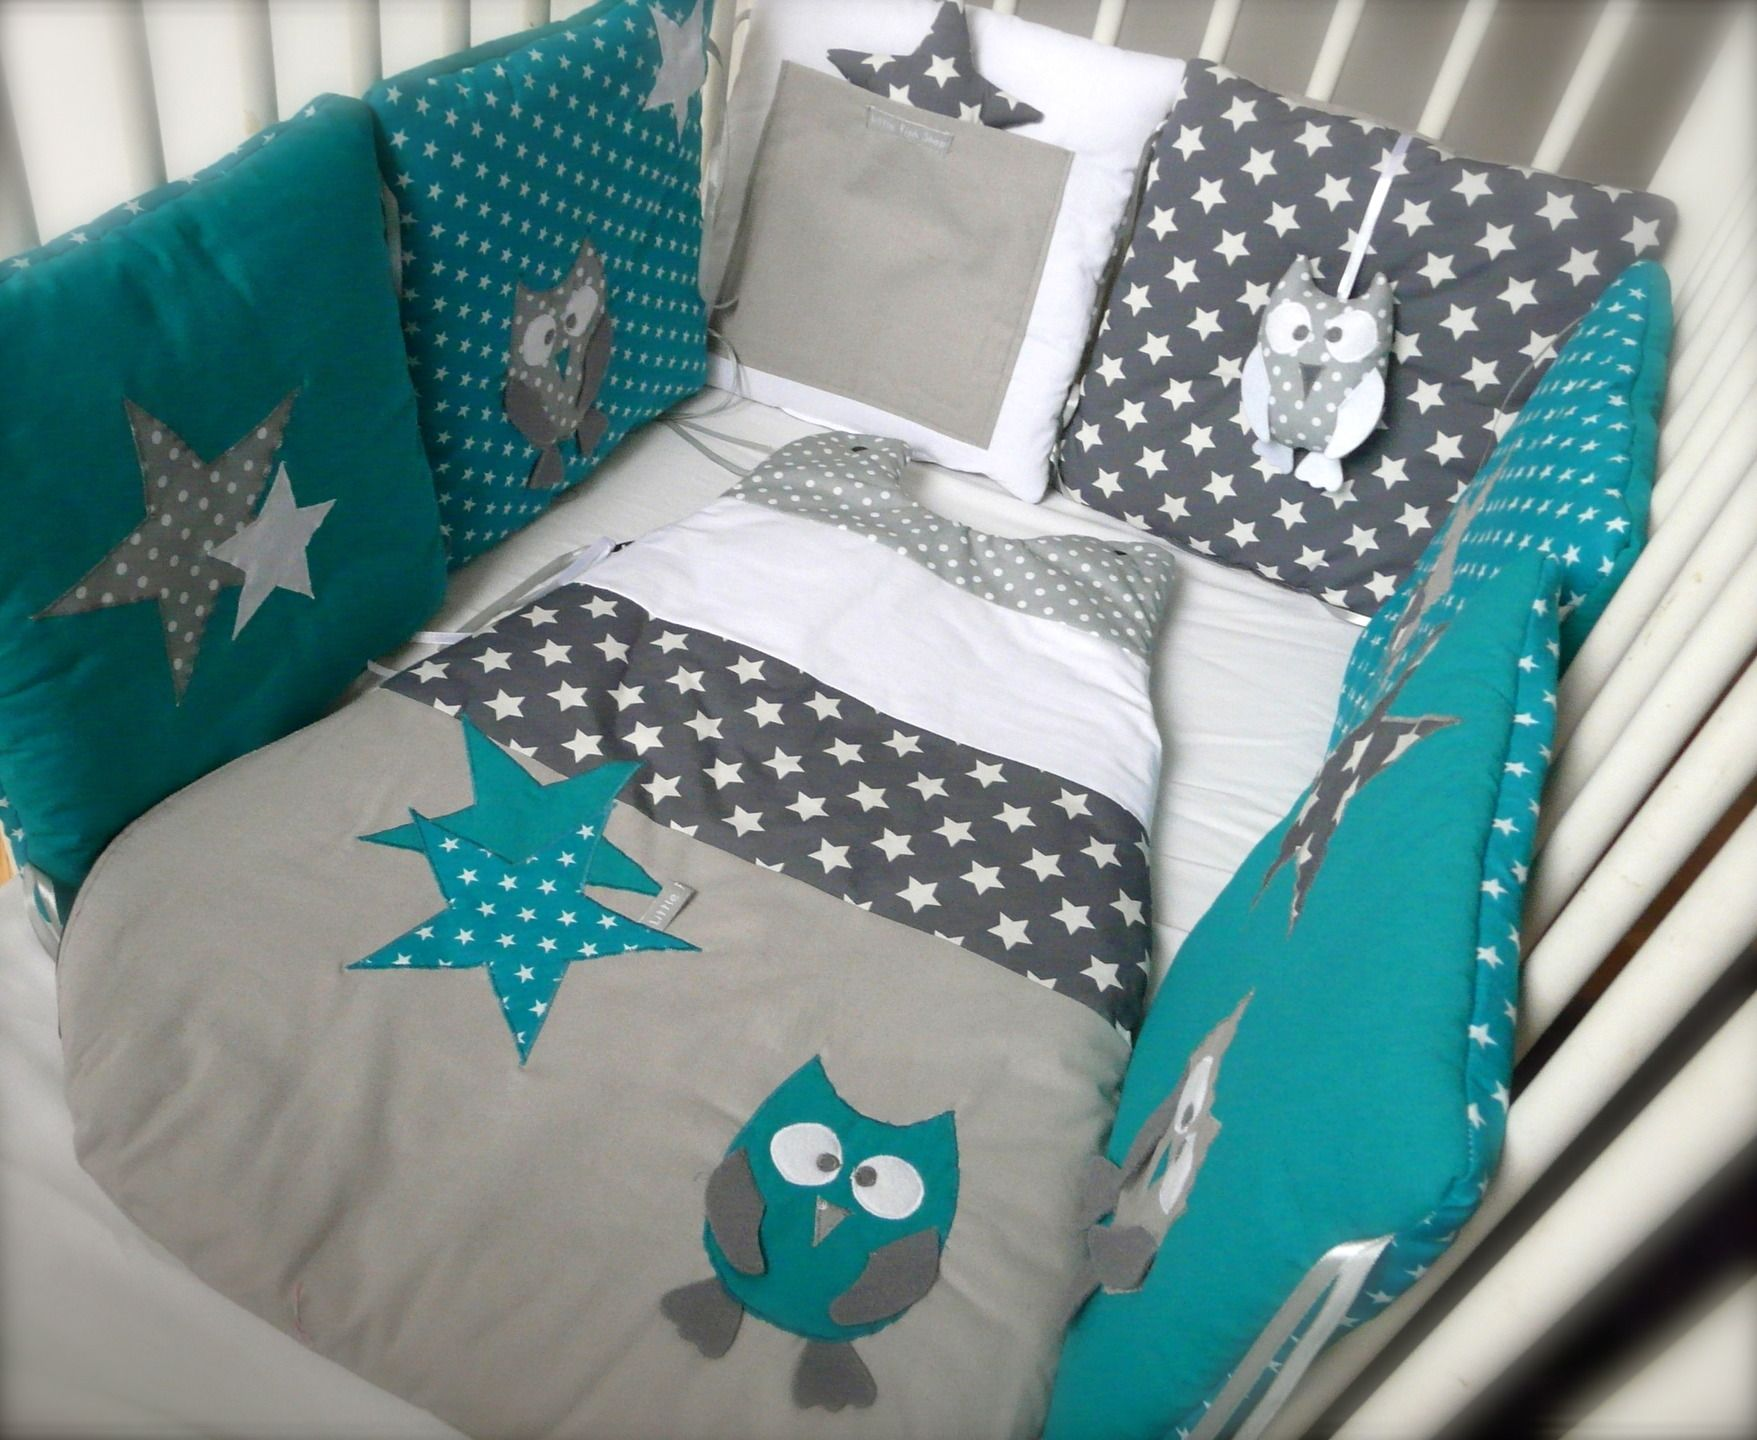 tour de lit chouettes et toiles bleu canard et gris. Black Bedroom Furniture Sets. Home Design Ideas